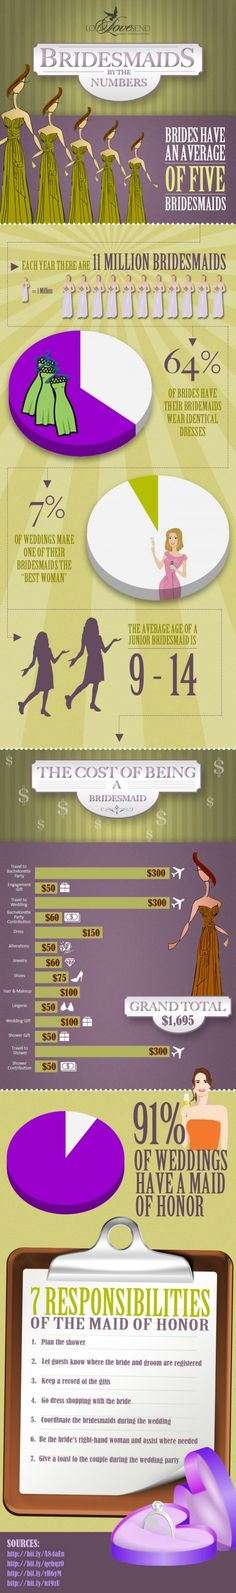 Wedding tradition stands strong when it comes to bridesmaids. Of the 11 million bridesmaids in action each year, brides still like having this entourage to help her stand out.    What's probably changed the most is the cost of being a bridesmaid. There's no getting around it—it's an expensive honor. The total average cost a bridesmaid is likely to incur, from the time she is asked and accepts through the wedding day itself, is a whopping $1,695.